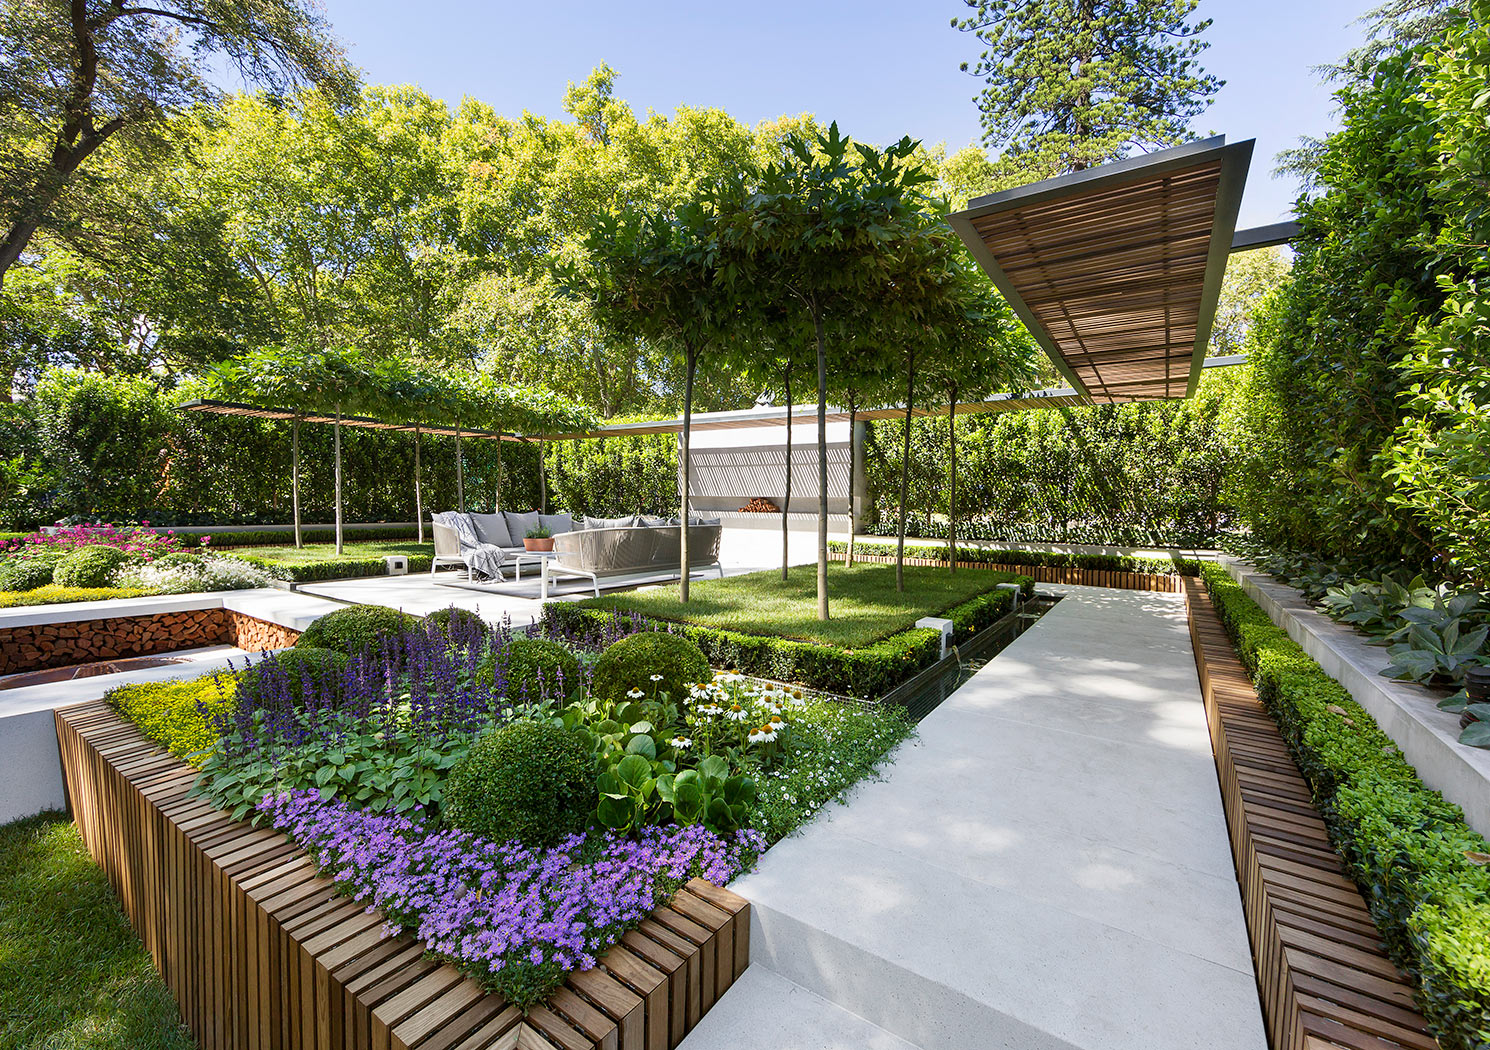 Landscape garden designer melbourne nathan burkett design for In the garden landscape and design